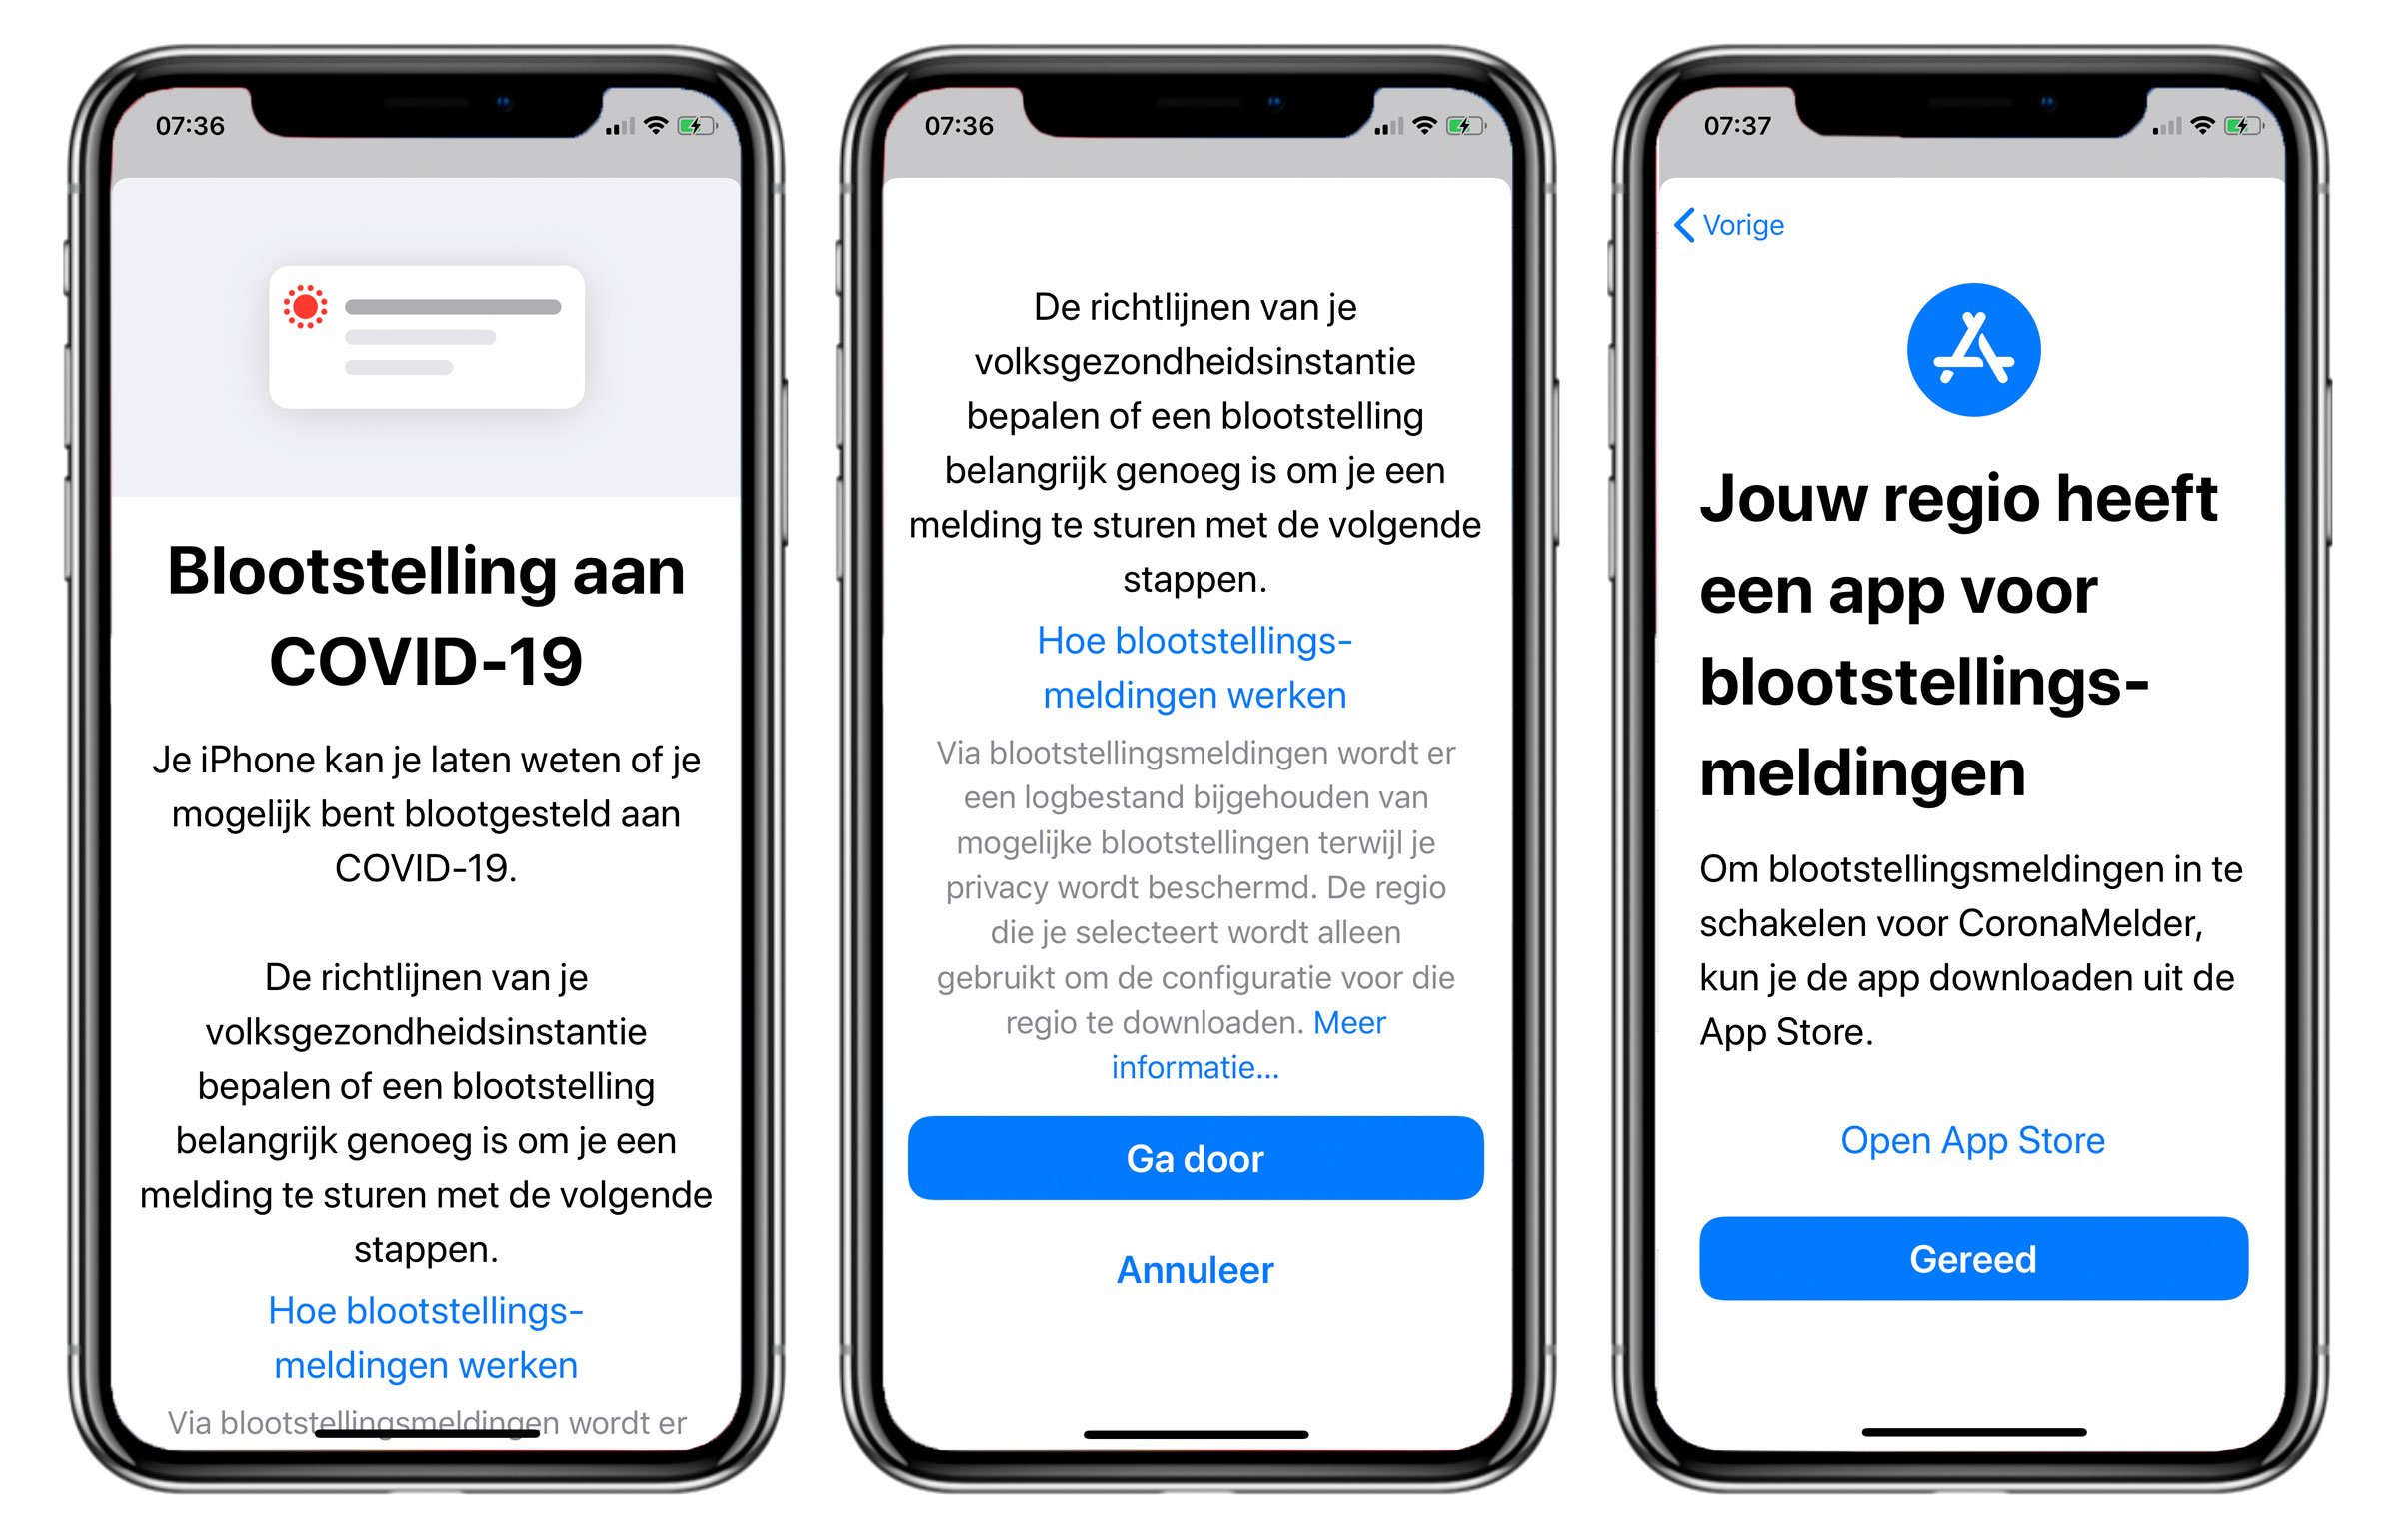 https://www.macfreak.nl/modules/news/images/zArt.iOS13.7BlootstellingsmeldingenVervolg.jpg